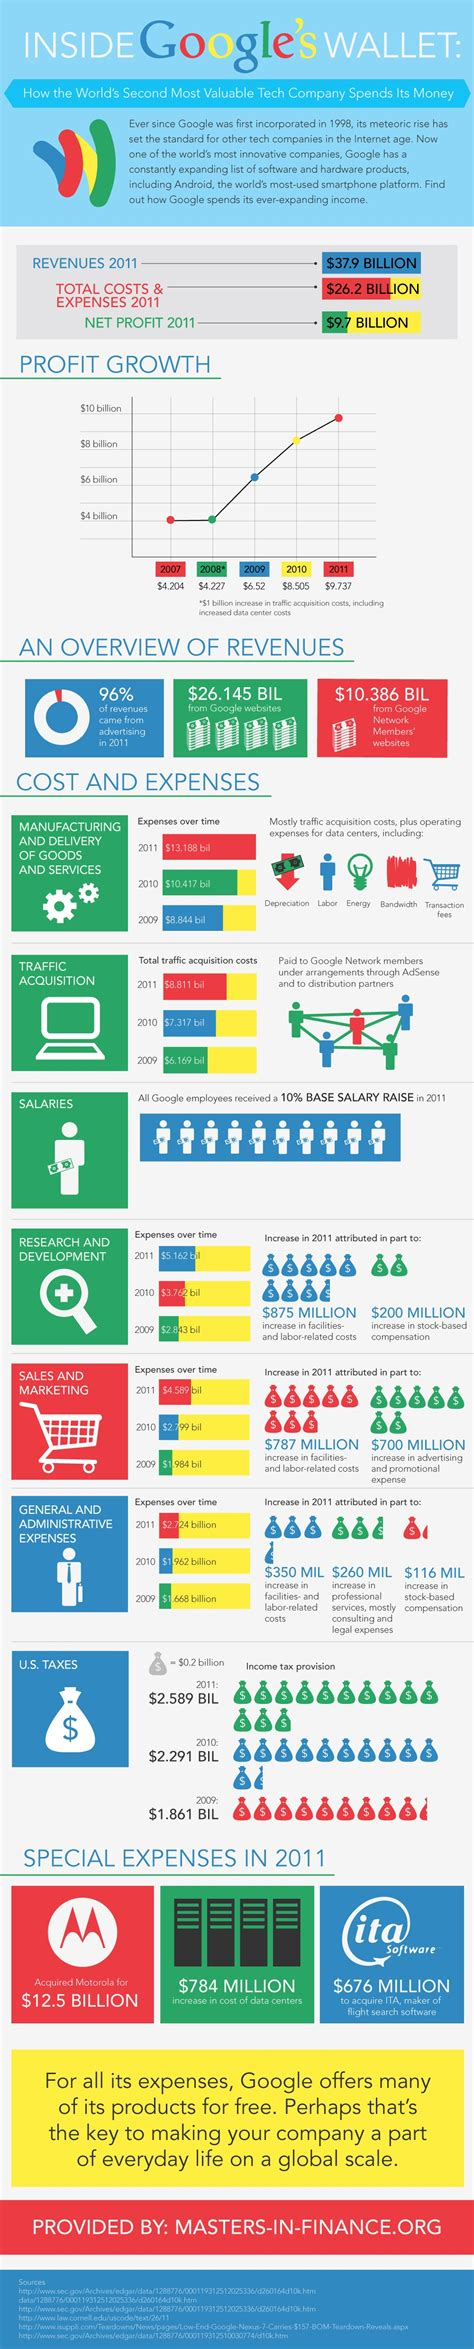 google images infographic how google spends its money infographic